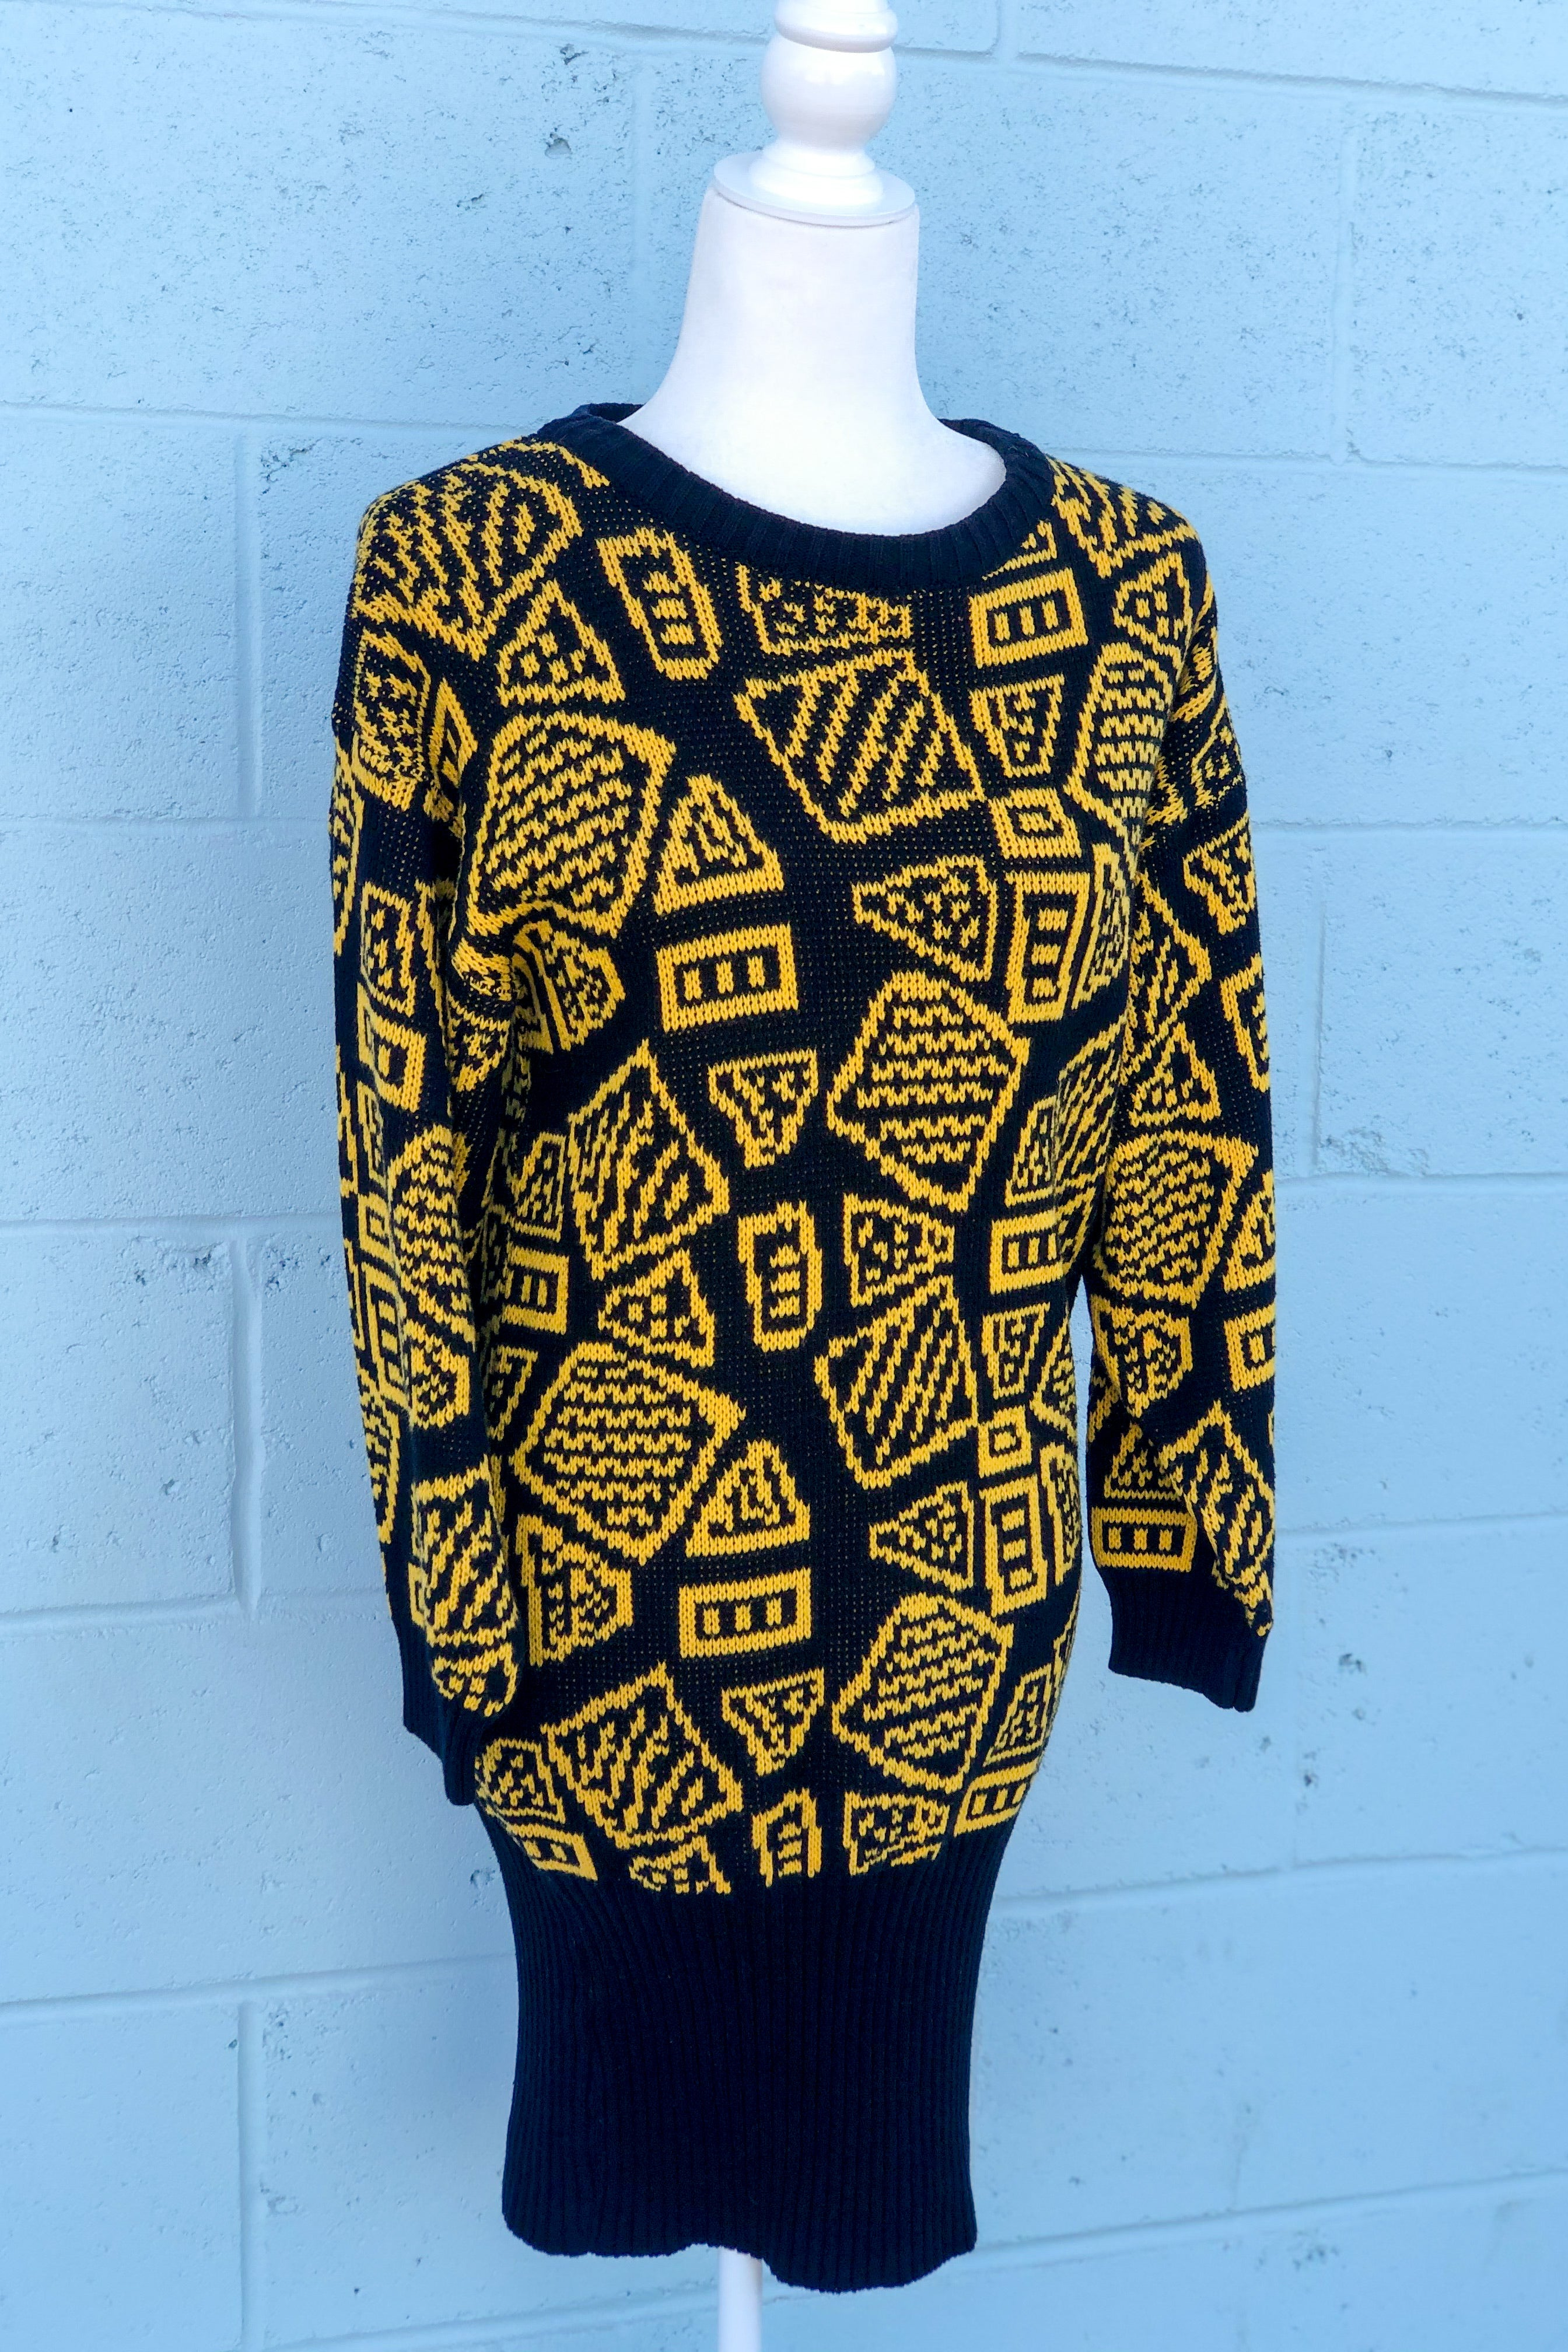 Vintage 80's Yellow & Black Sweater Dress / S-L